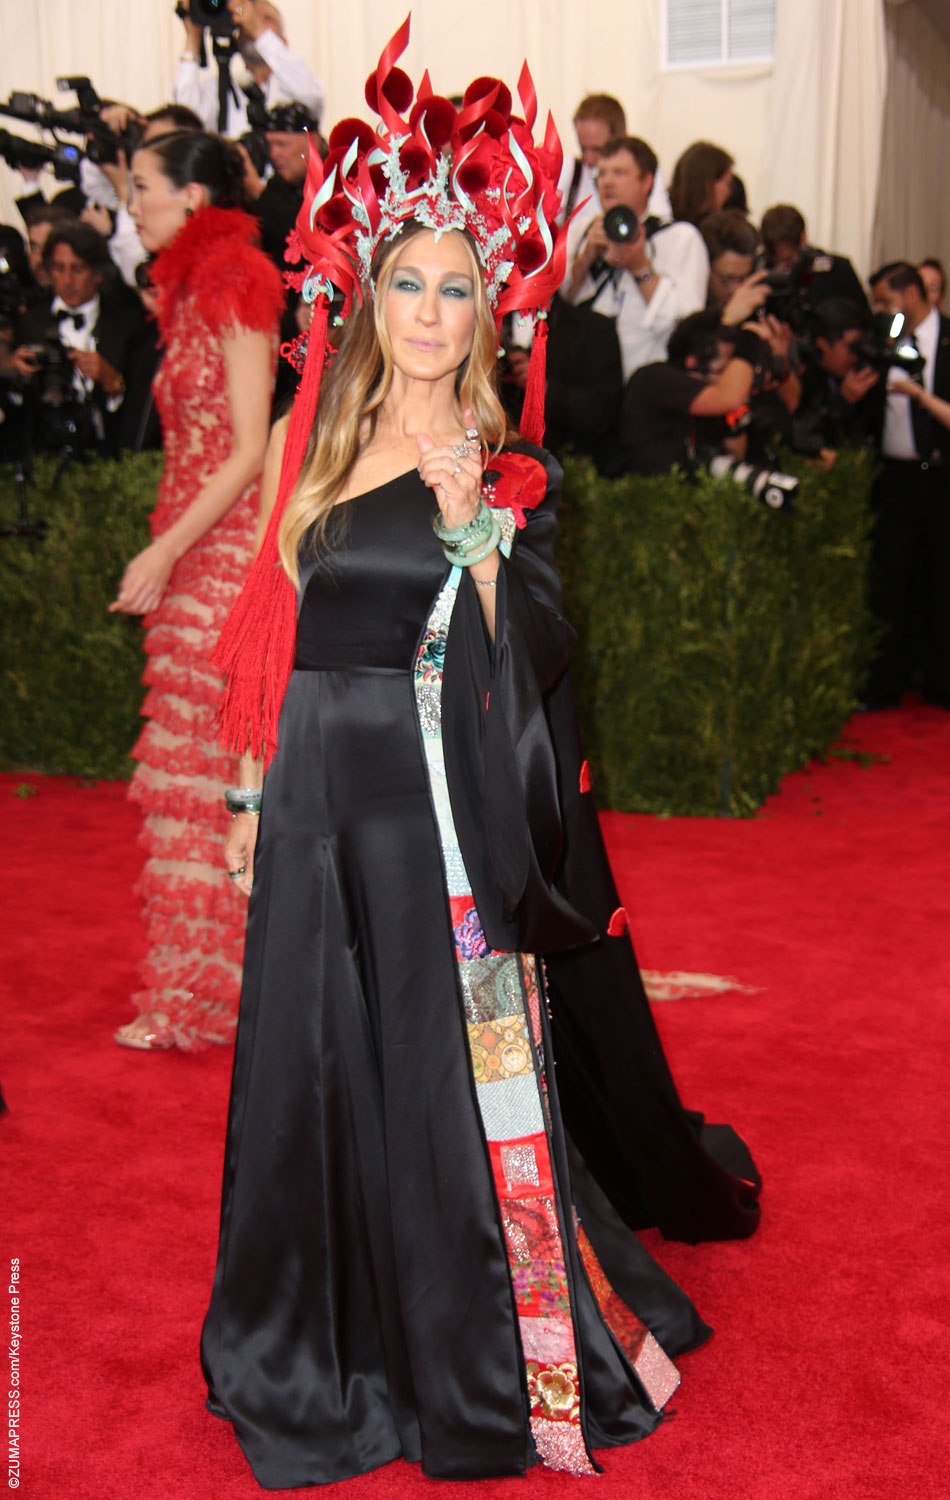 Fashion mogul Sarah Jessica Parker did not disappoint. Her custom made dress and Philip Tracey hat fit this year's theme, China: Through the Looking Glass, brilliantly. Accompanied by Andy Cohen, SJP looked as bold and eccentric as one would hope she would.